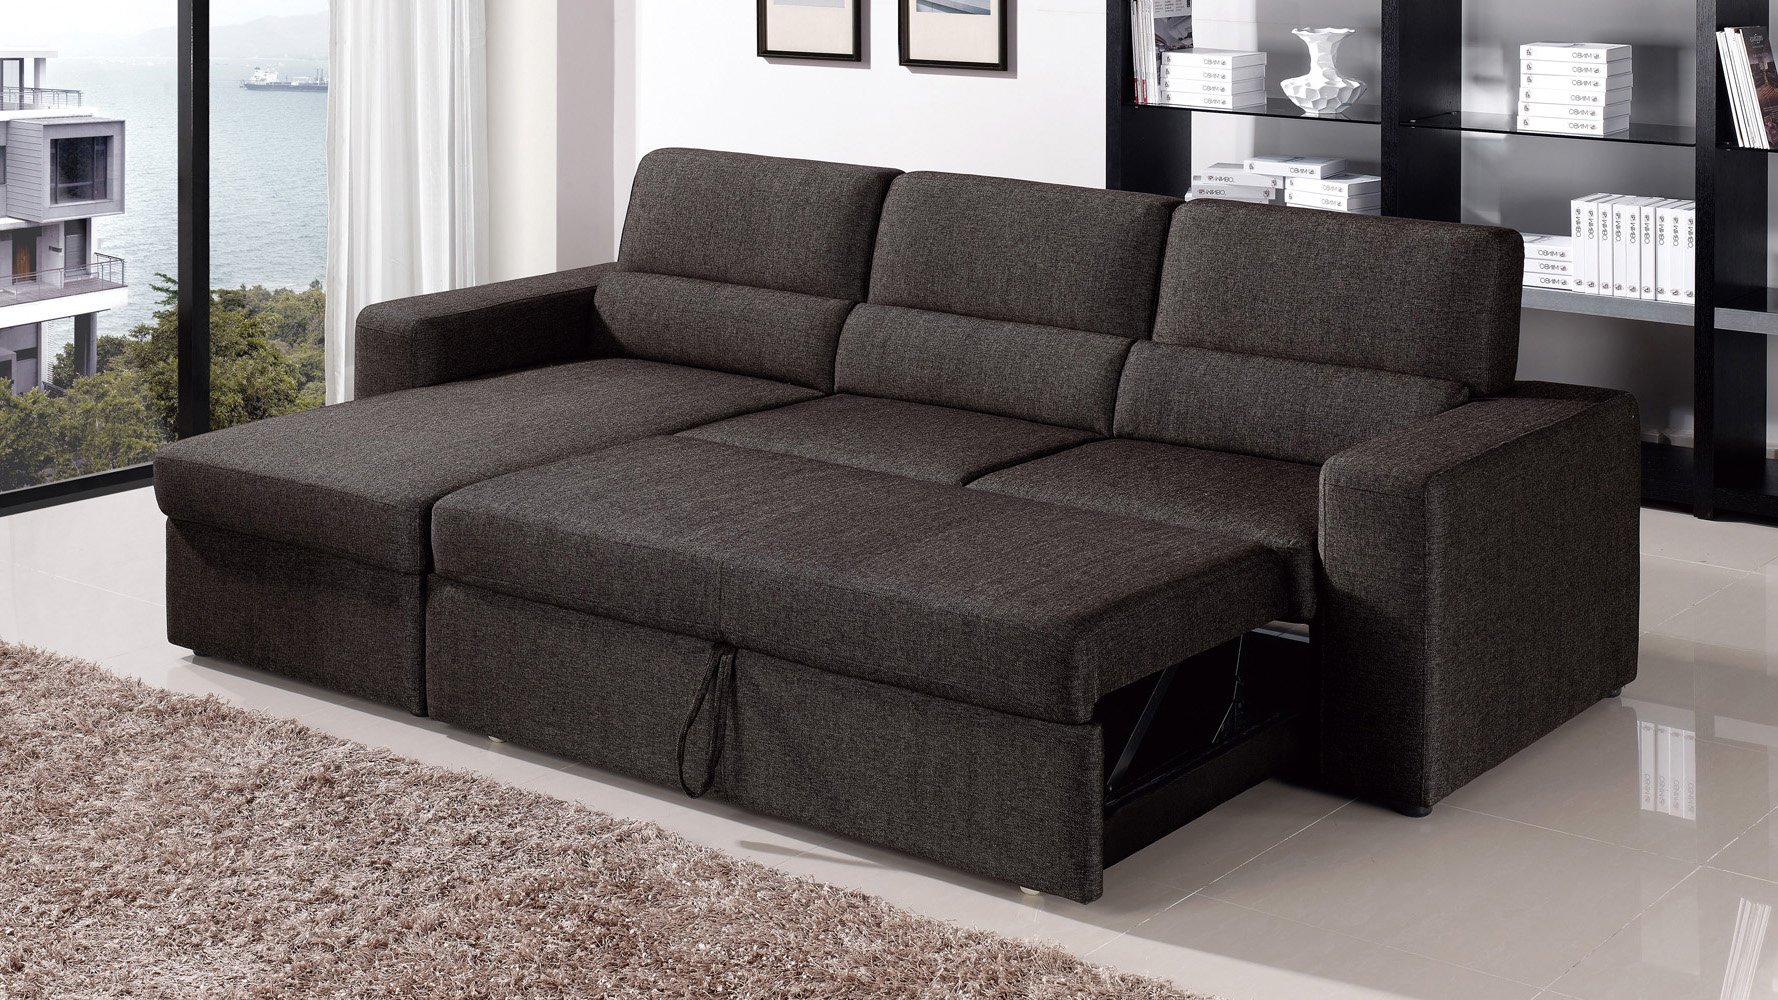 Black brown clubber sleeper sectional sofa zuri furniture for Sectional furniture